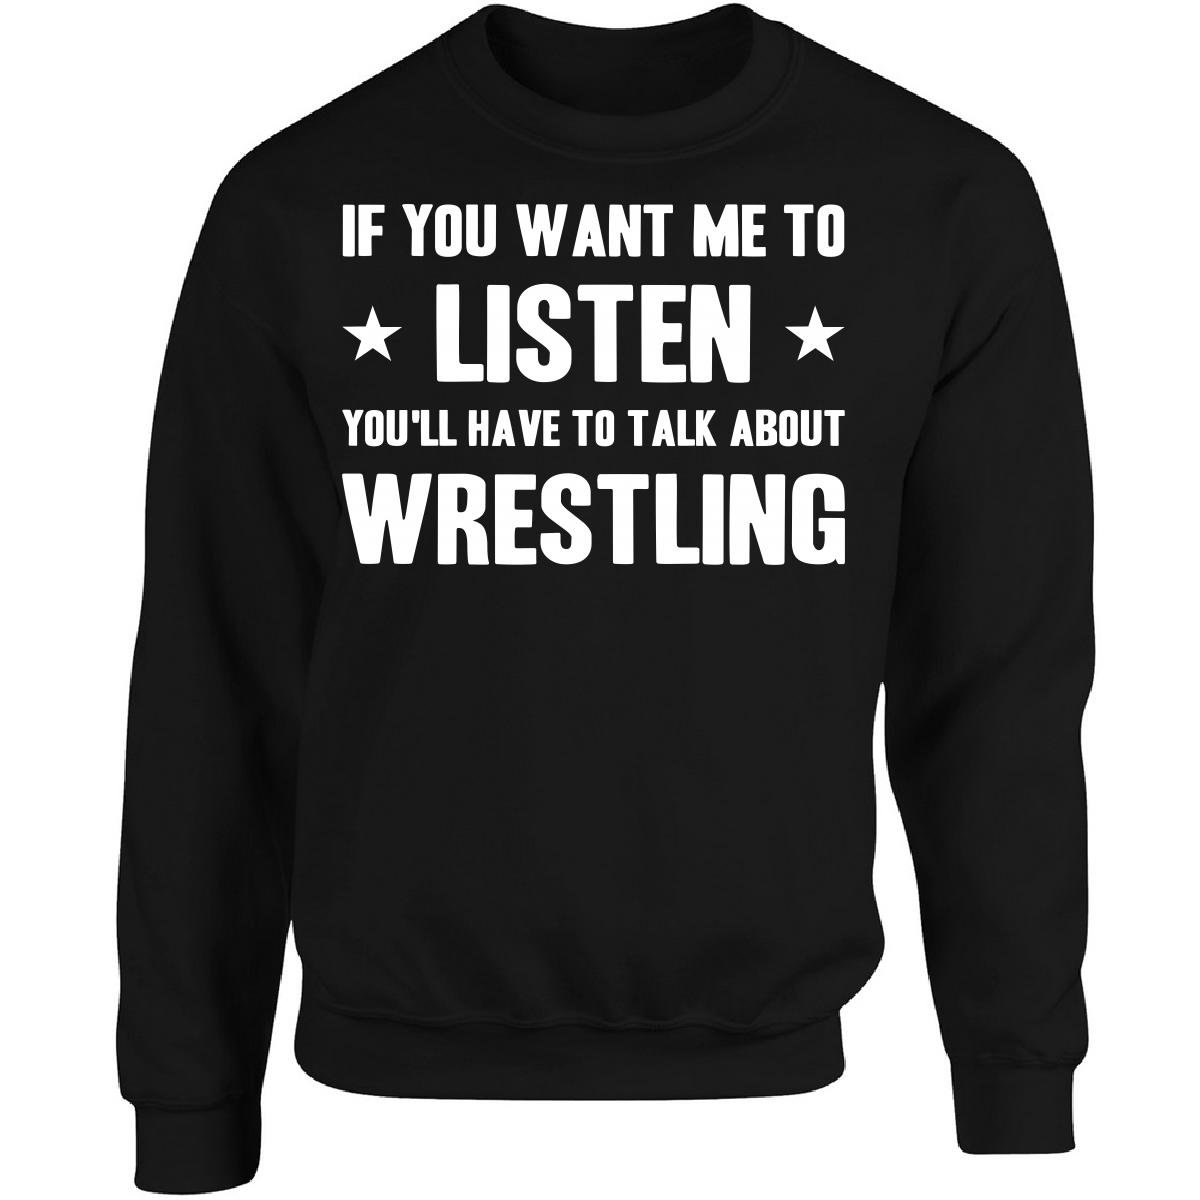 Esparosa If You Want Me To Listen You'll Have To Talk About Wrestling - Adult Sweatshirt by Esparosa